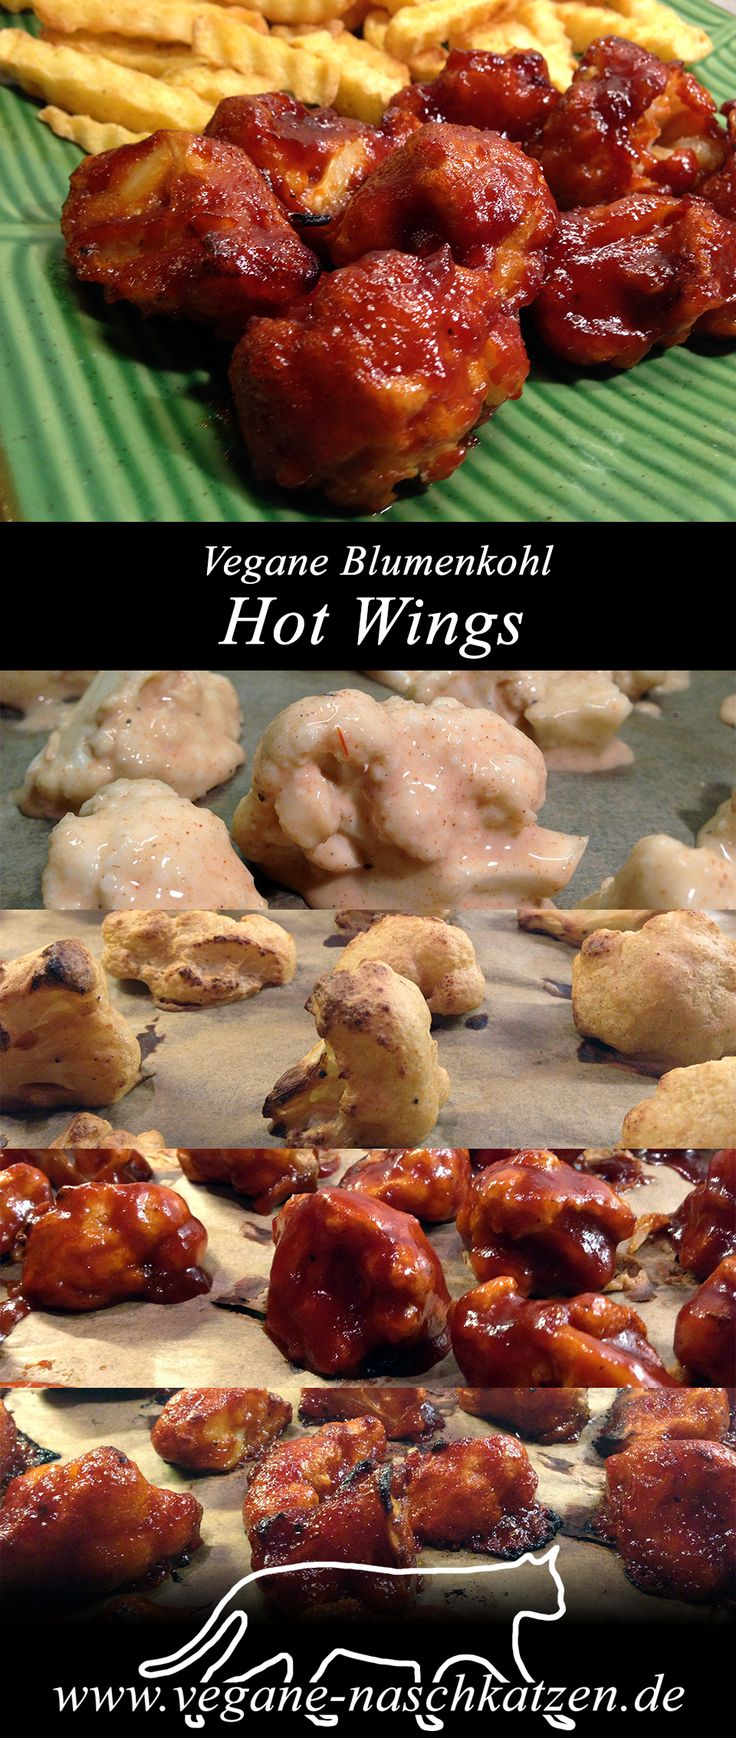 Vegane Hot Wings aus Blumenkohl mit selbstgemachter Hot Barbecue Sauce